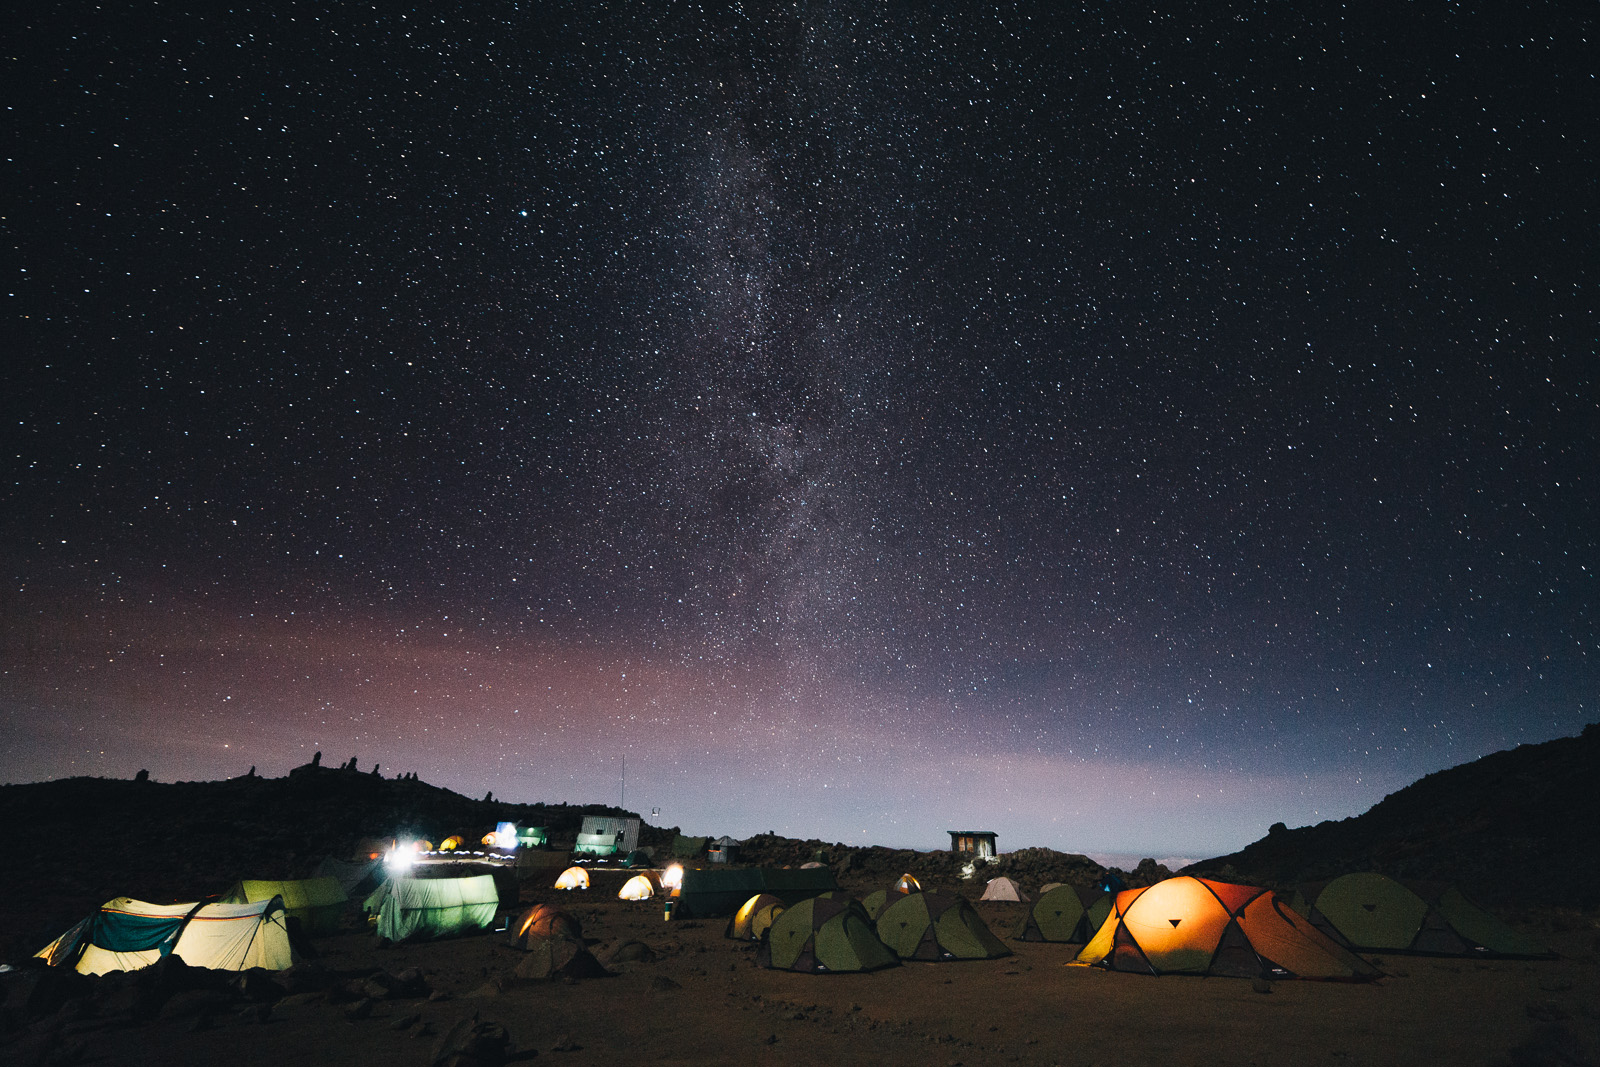 kilimanjaro-mawenzi-camp-milky-way